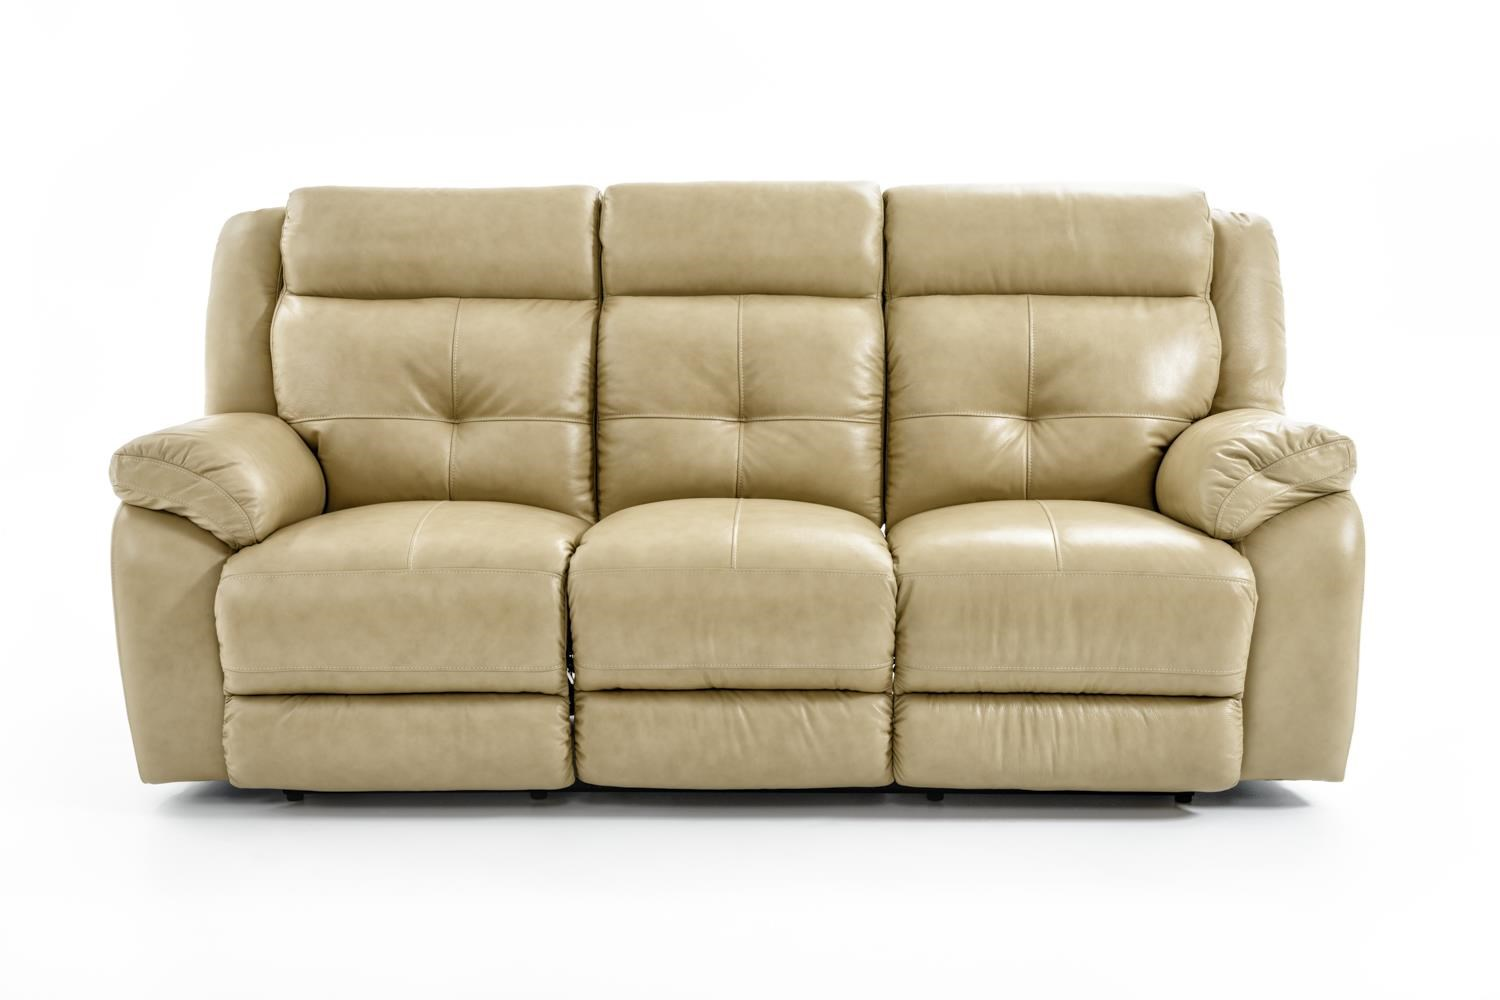 Futura Leather m771 Dual Reclining Sofa - Item Number: M771-83 1288H CHESAPEAKE